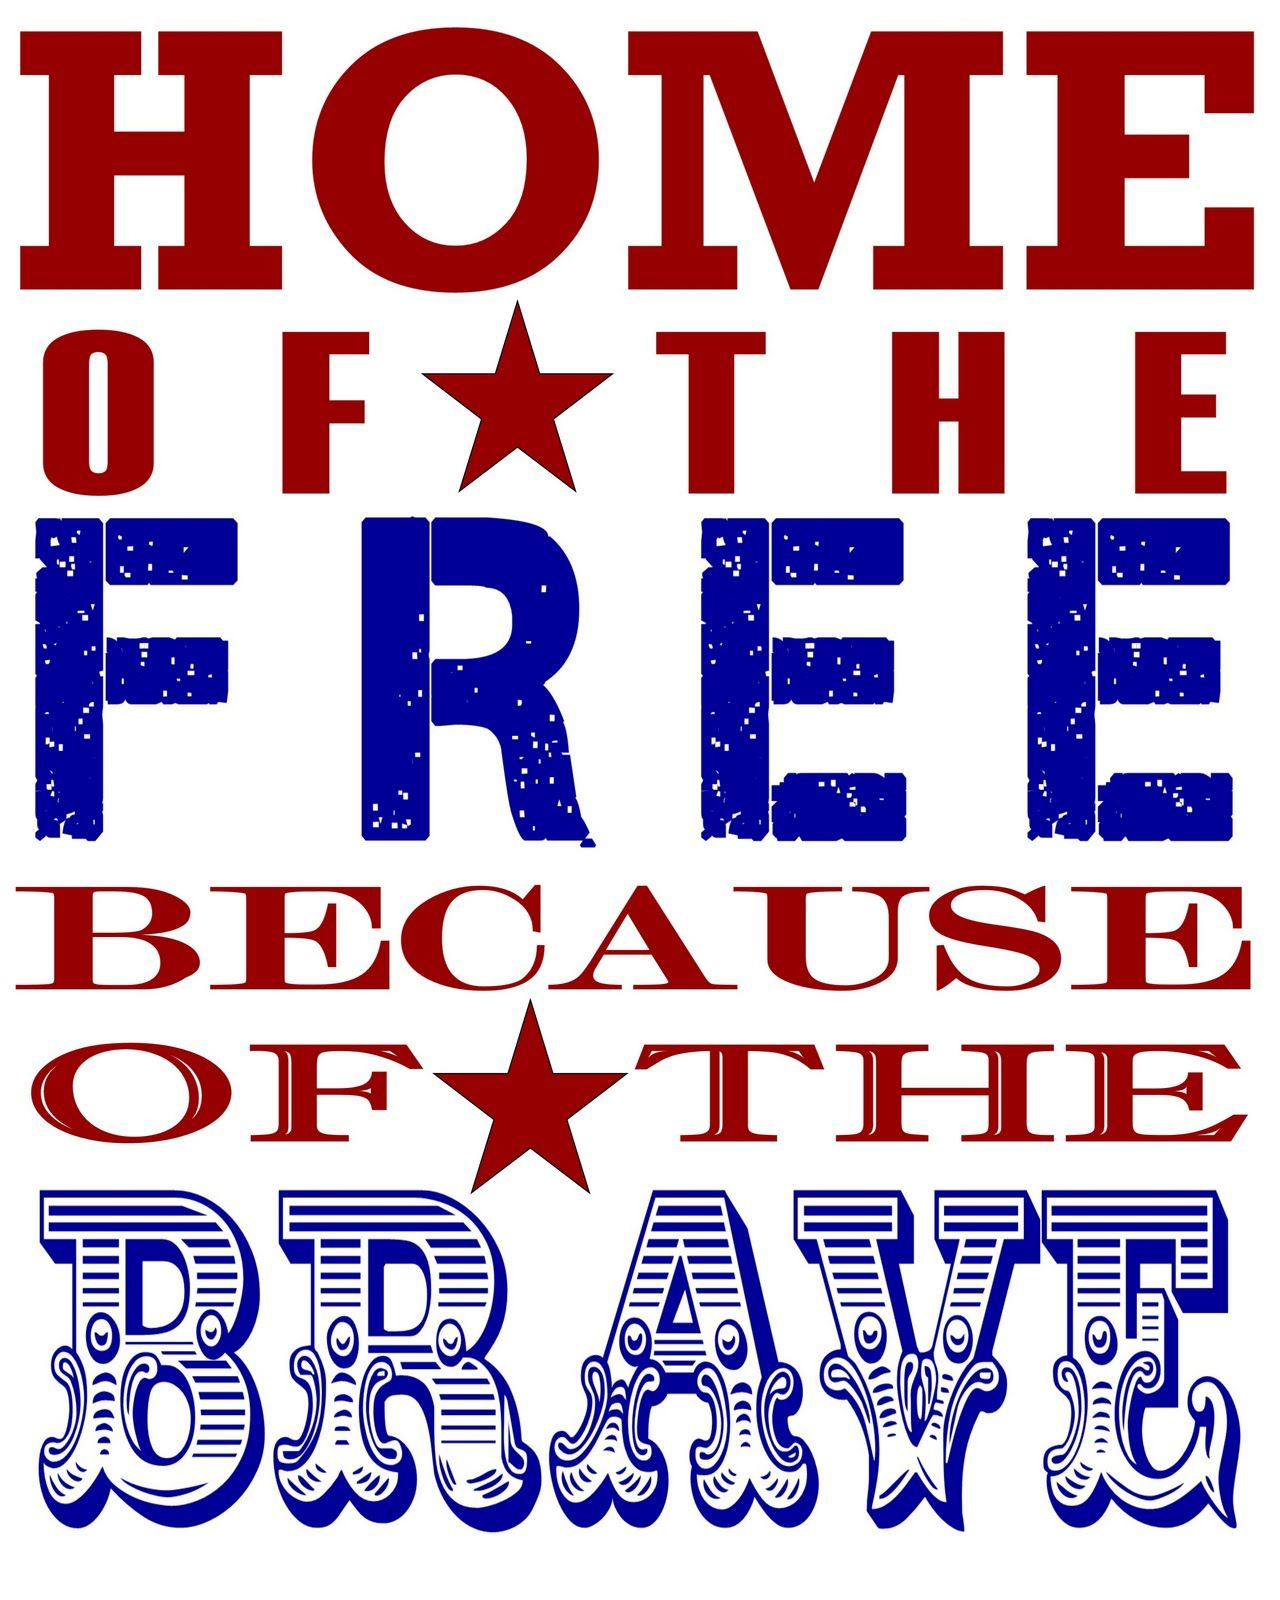 Patriotic Printable | Homecoming | Pinterest | Memorial Day, Amore - Home Of The Free Because Of The Brave Printable